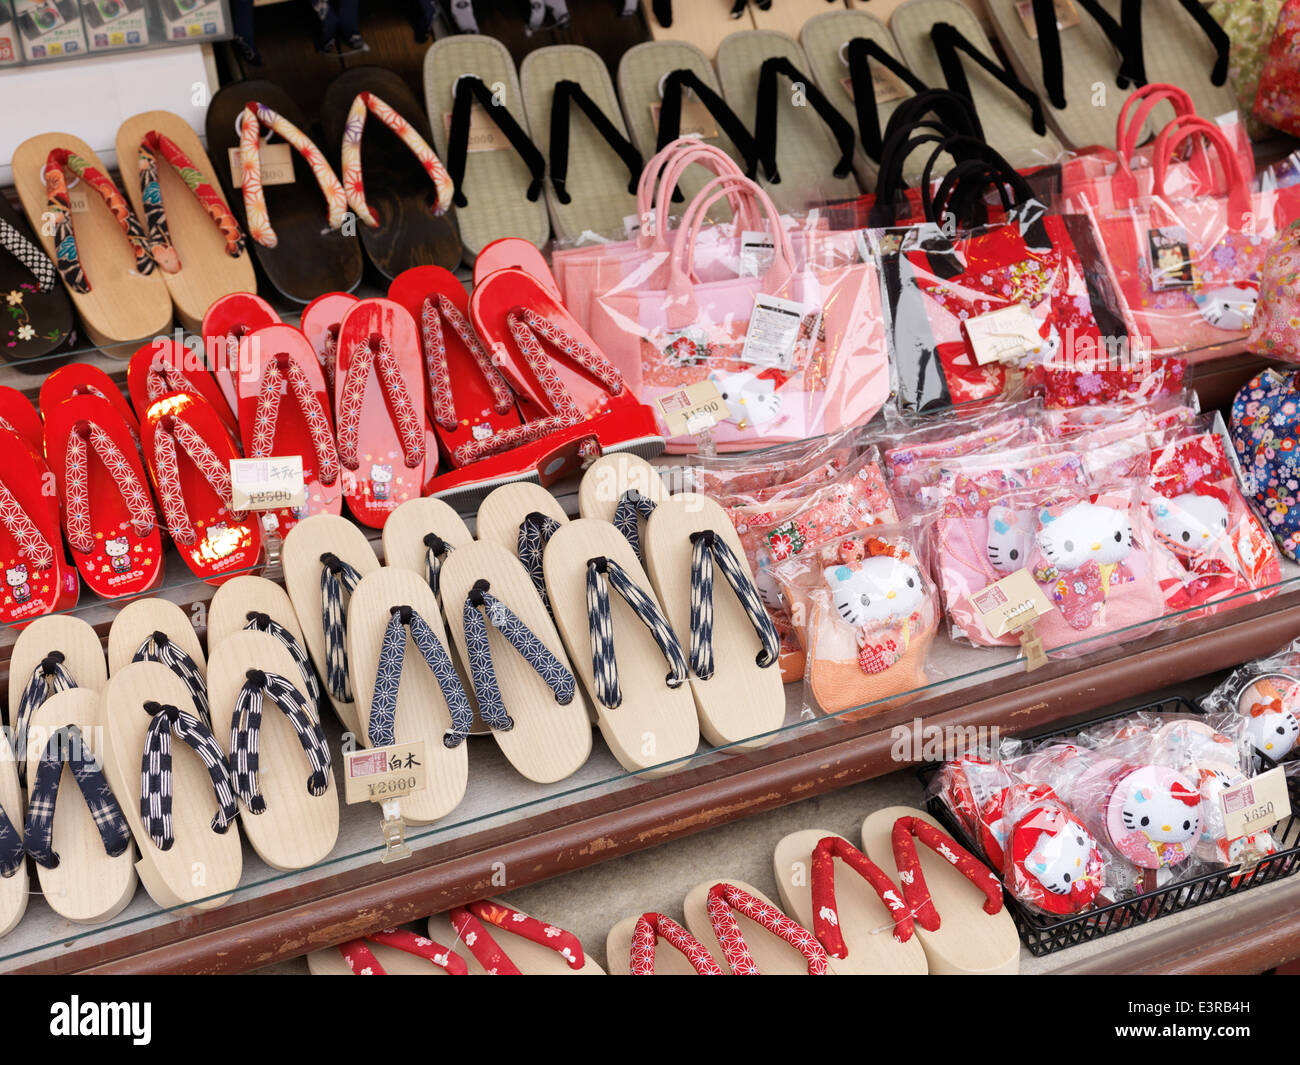 Japanese zori sandals and Hello kitty bags on display in a souvenir store. Kyoto, Japan. - Stock Image